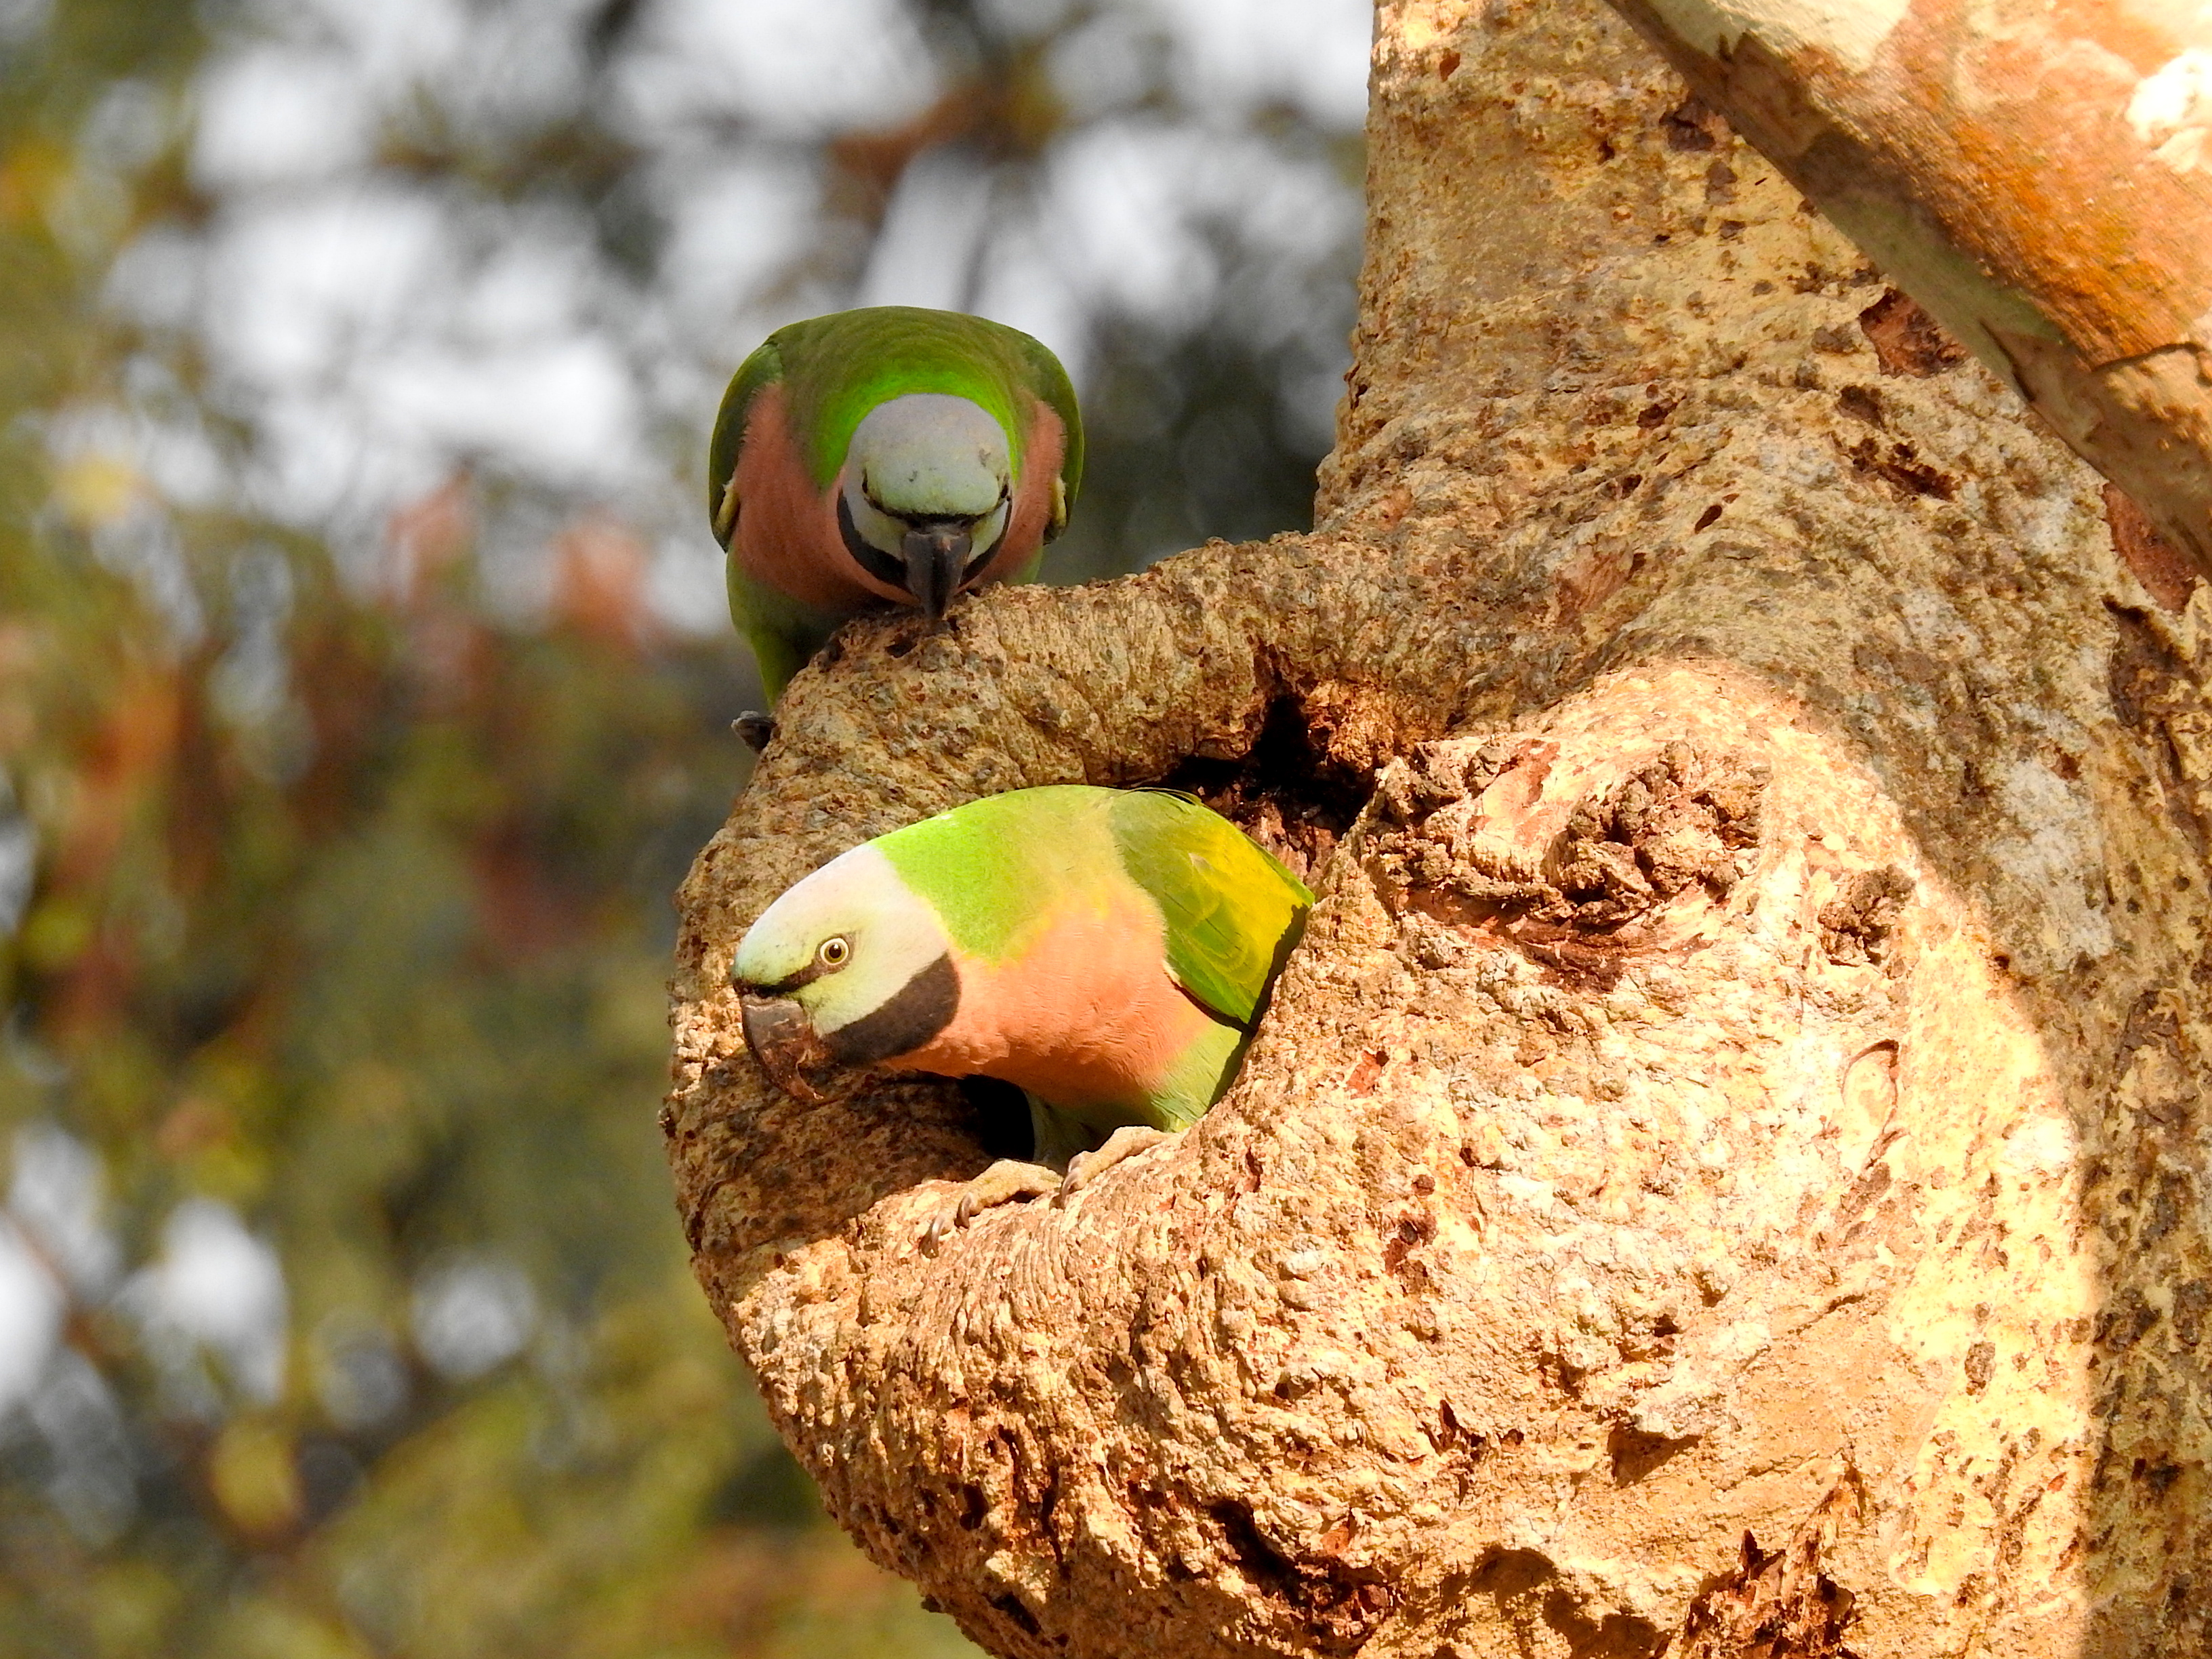 File:Red-breasted parakeets jpg - Wikimedia Commons